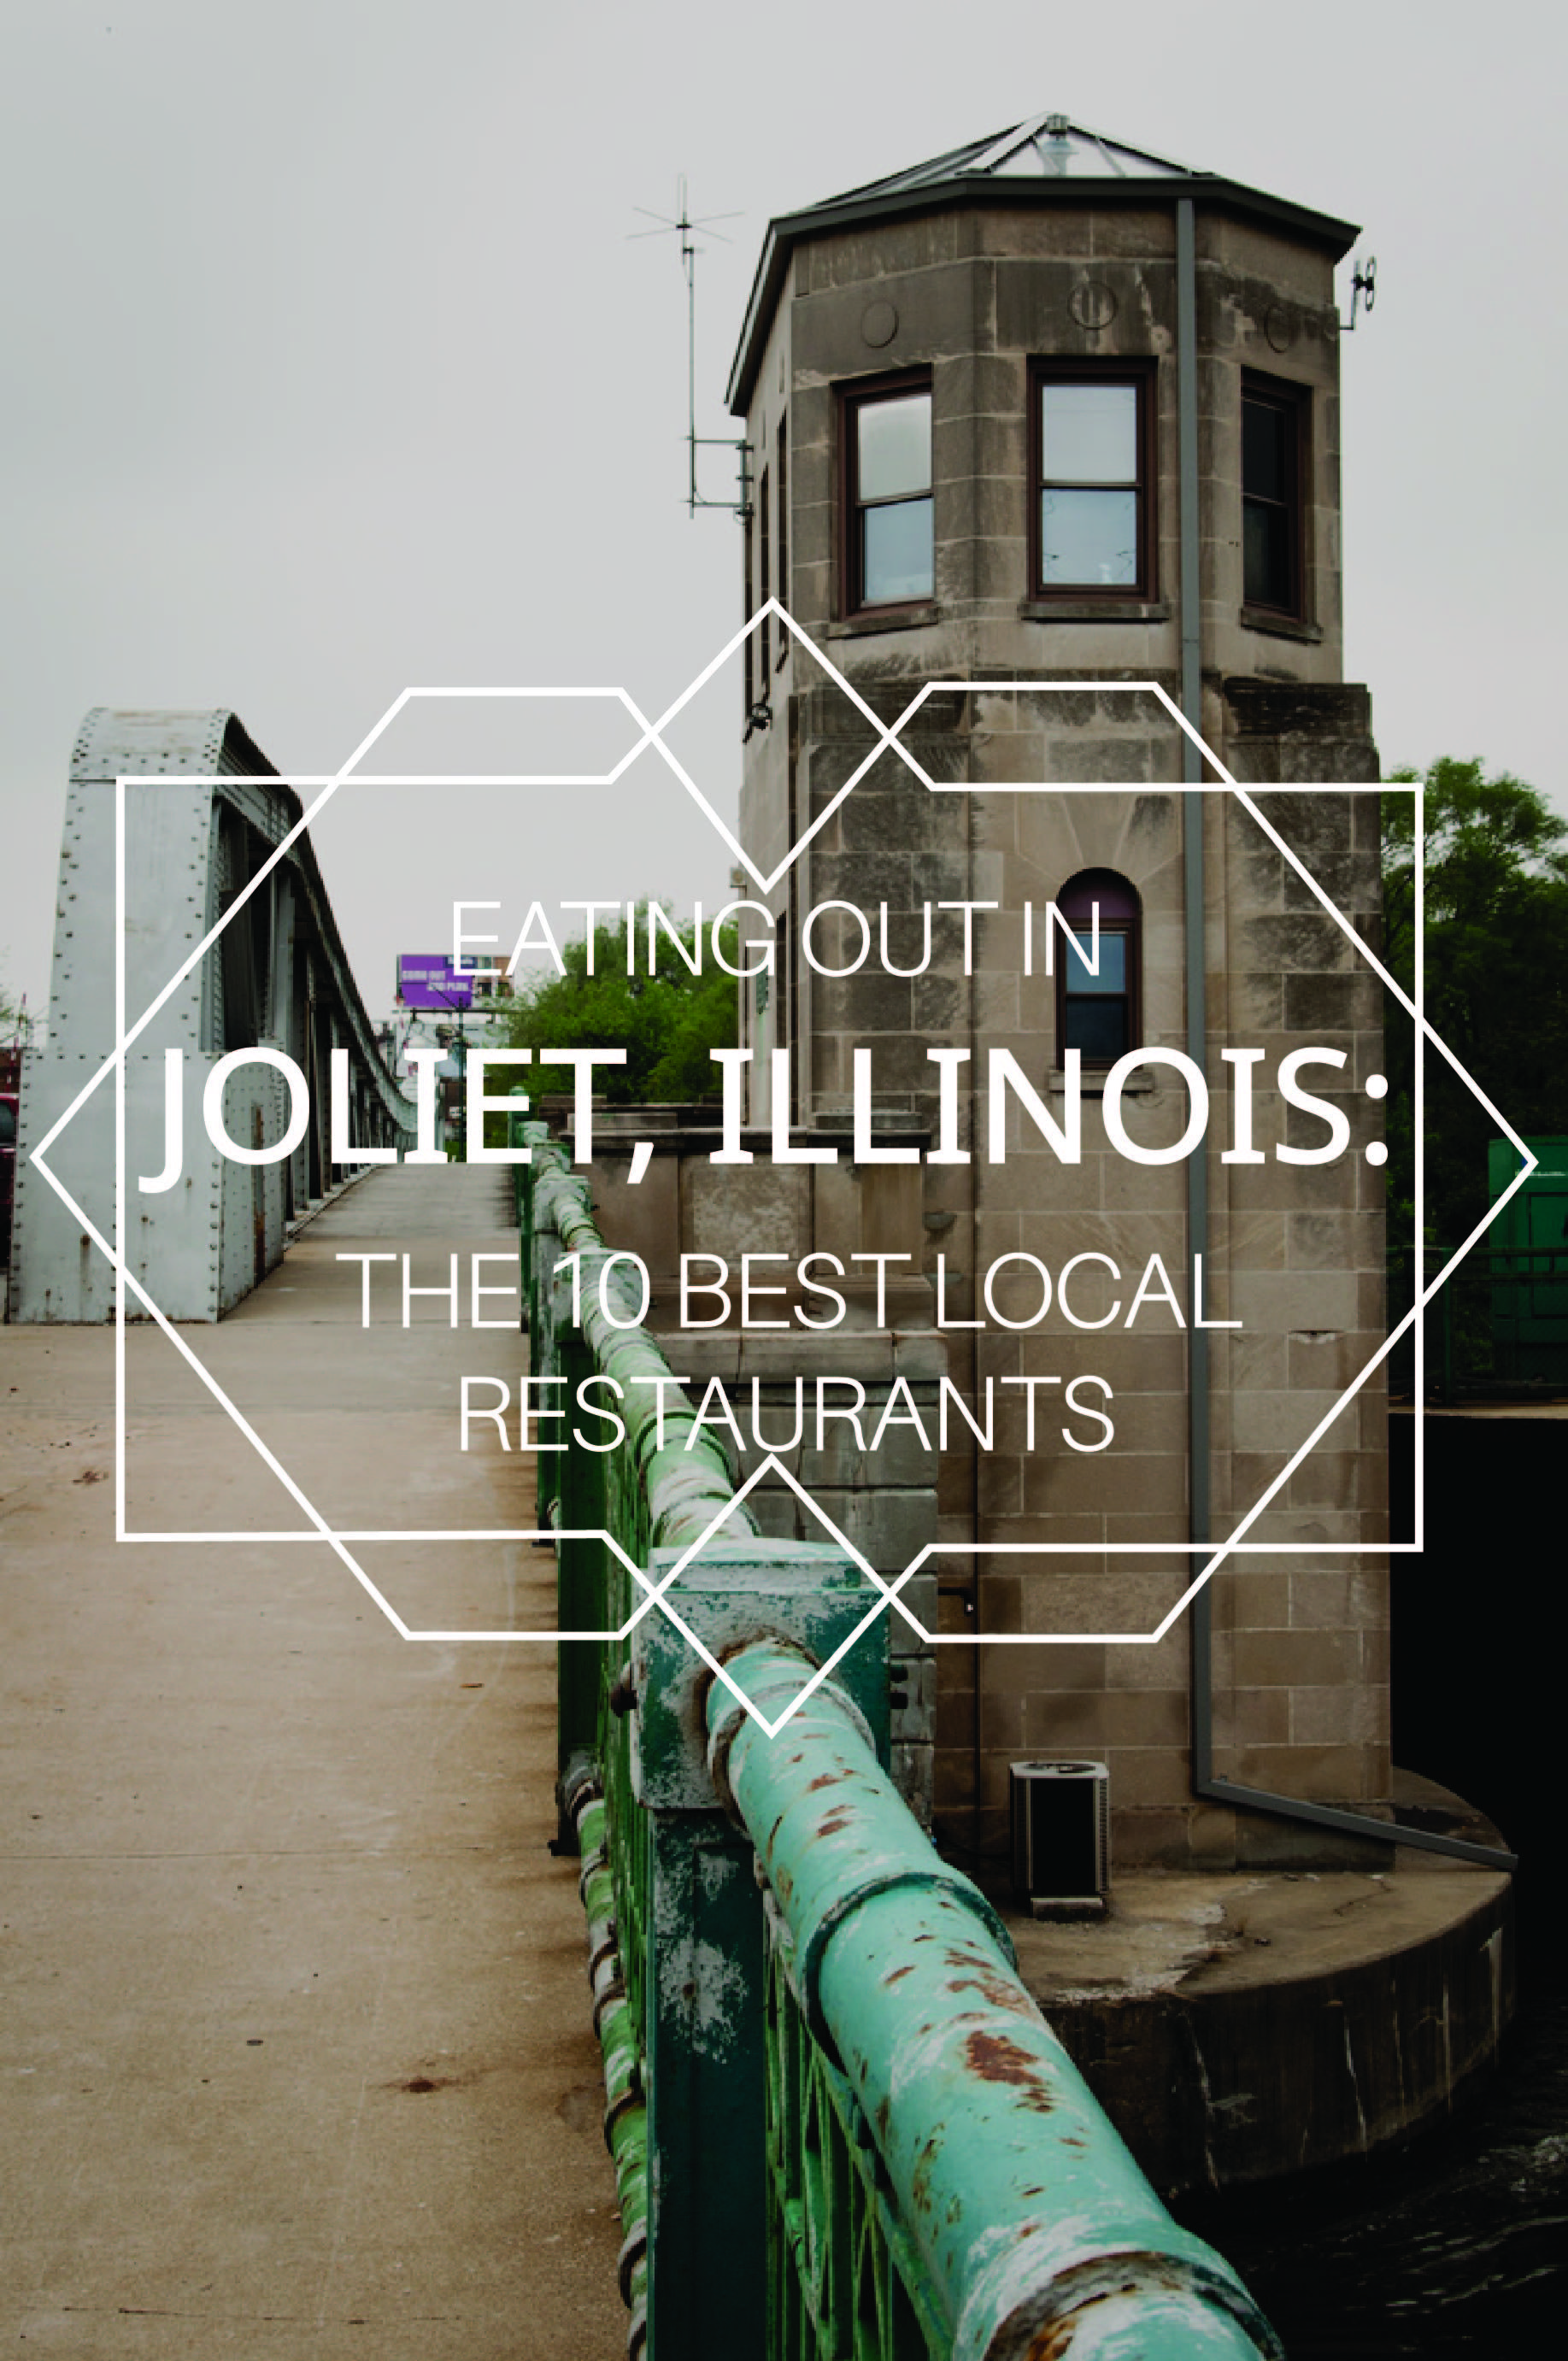 the 10 best local restaurants in joliet illinois